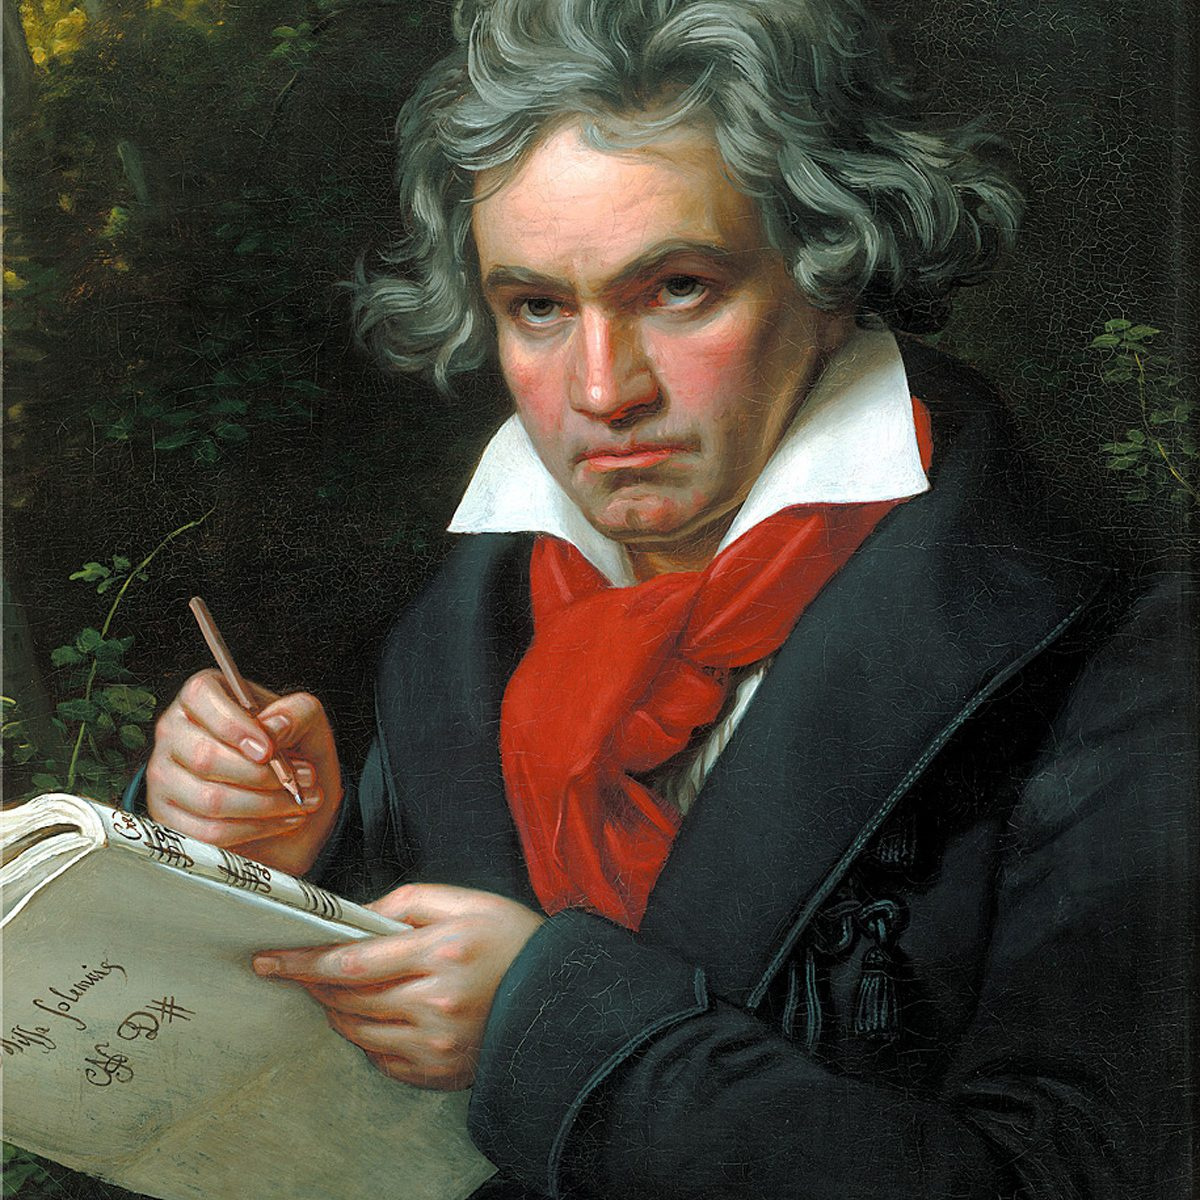 Ludwig Van Beethoven | Moonlight Sonata | piano sheet music with letter-note names added